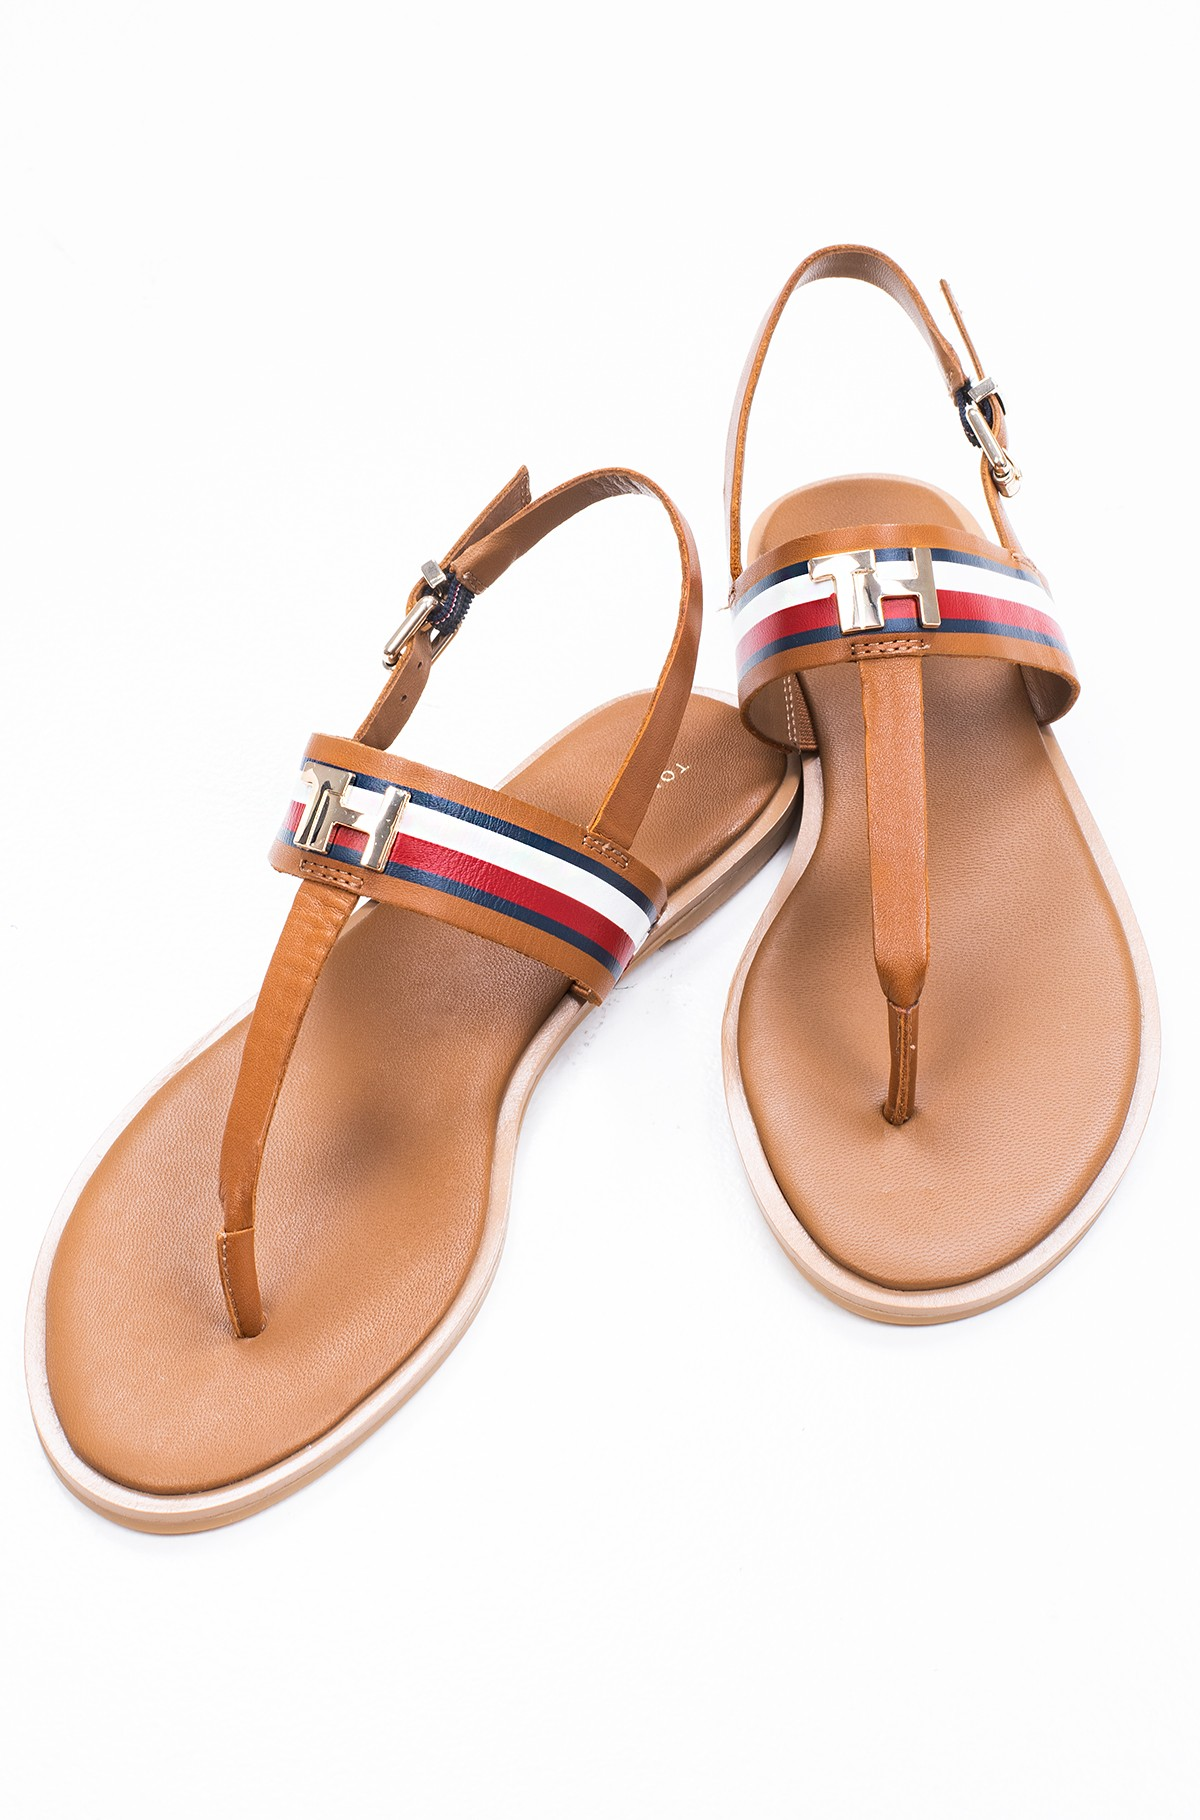 Sandals CORPORATE LEATHER FLAT SANDAL-full-1